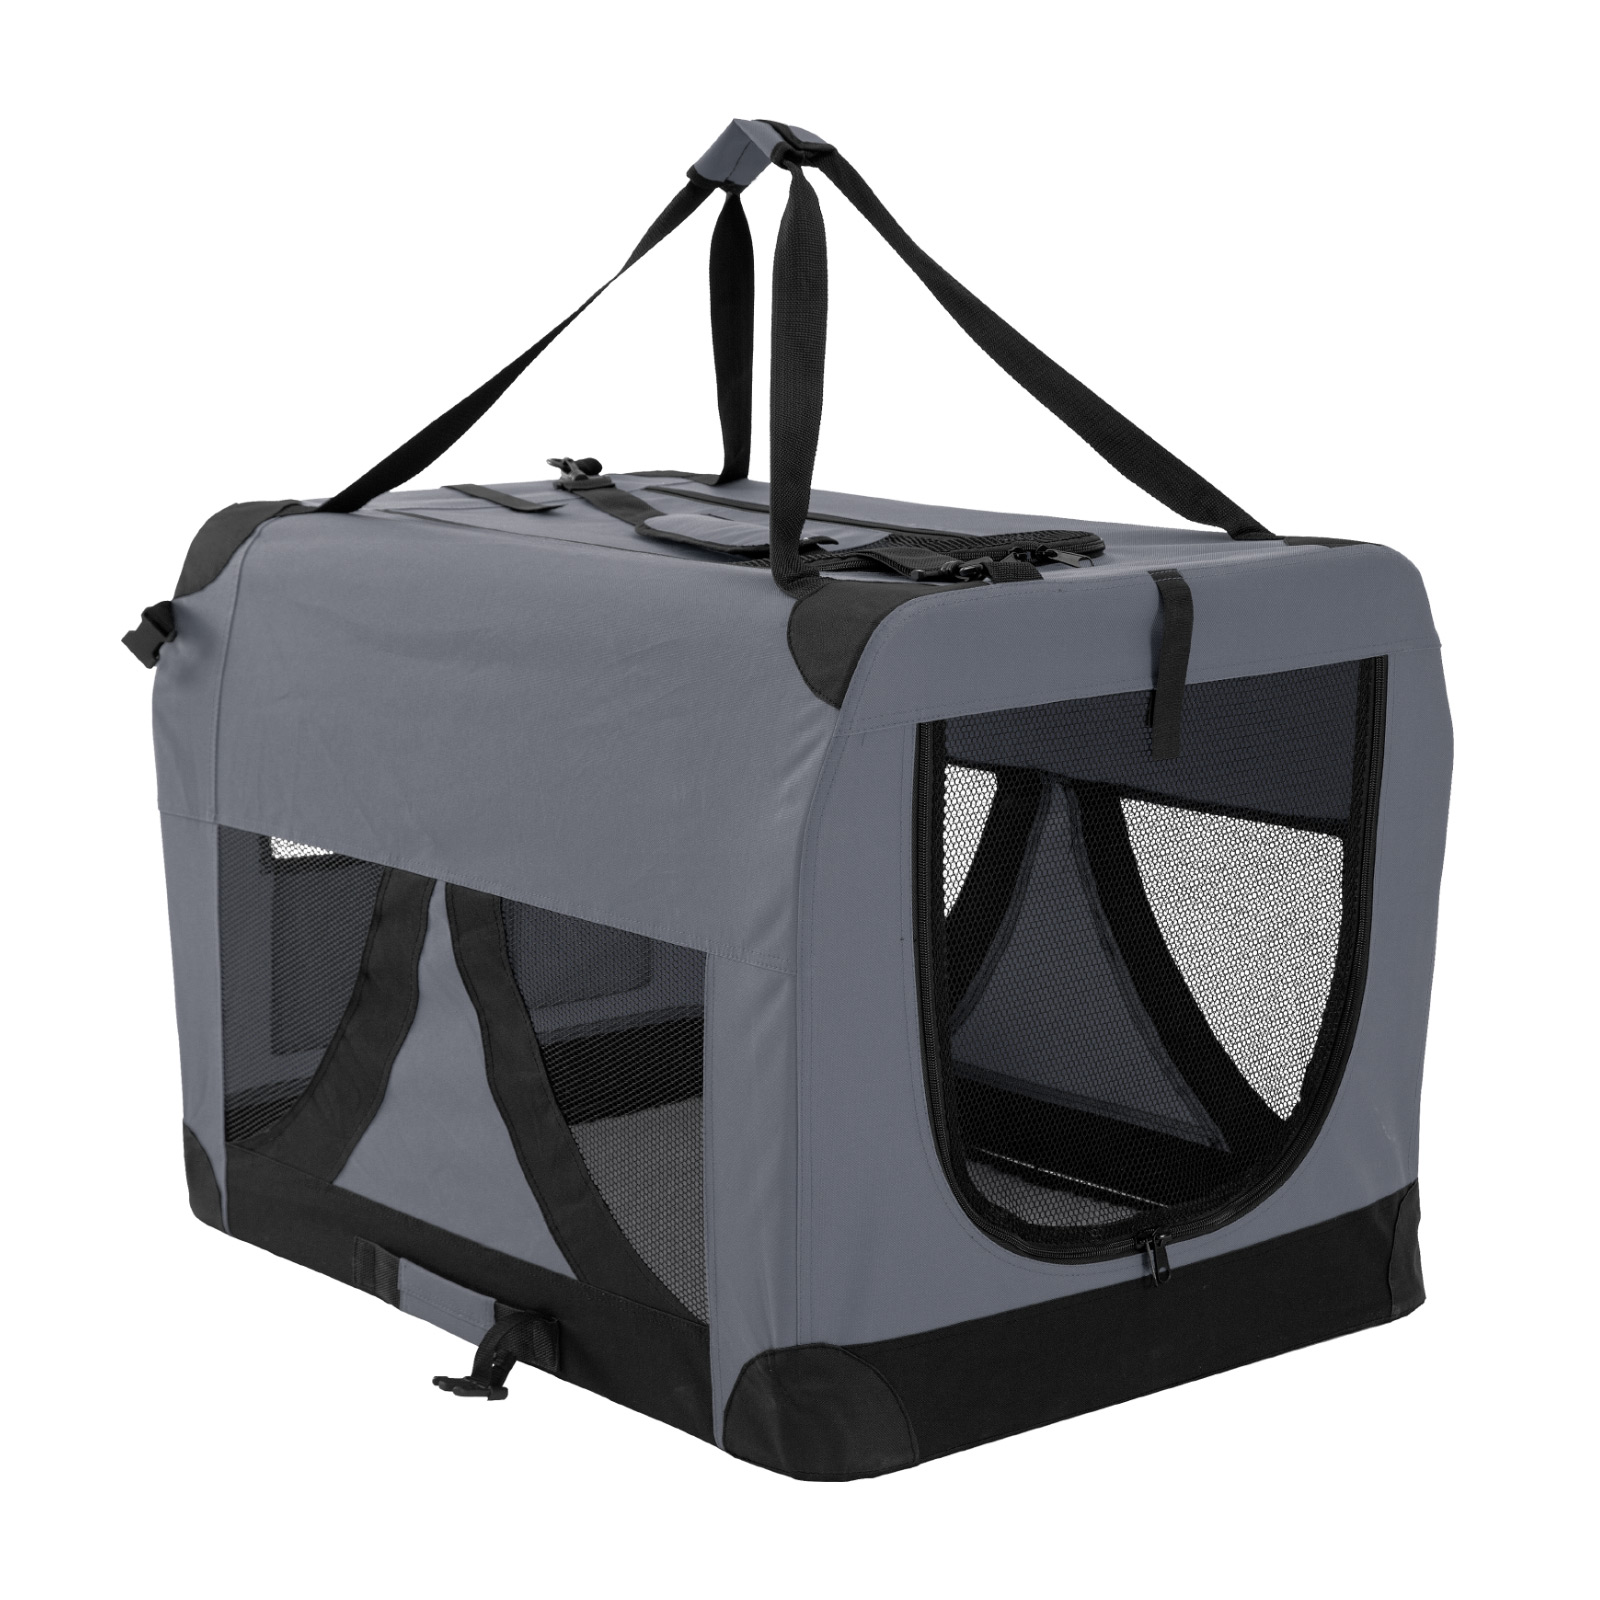 Portable Soft Dog Crate Xl Grey Paw Mate